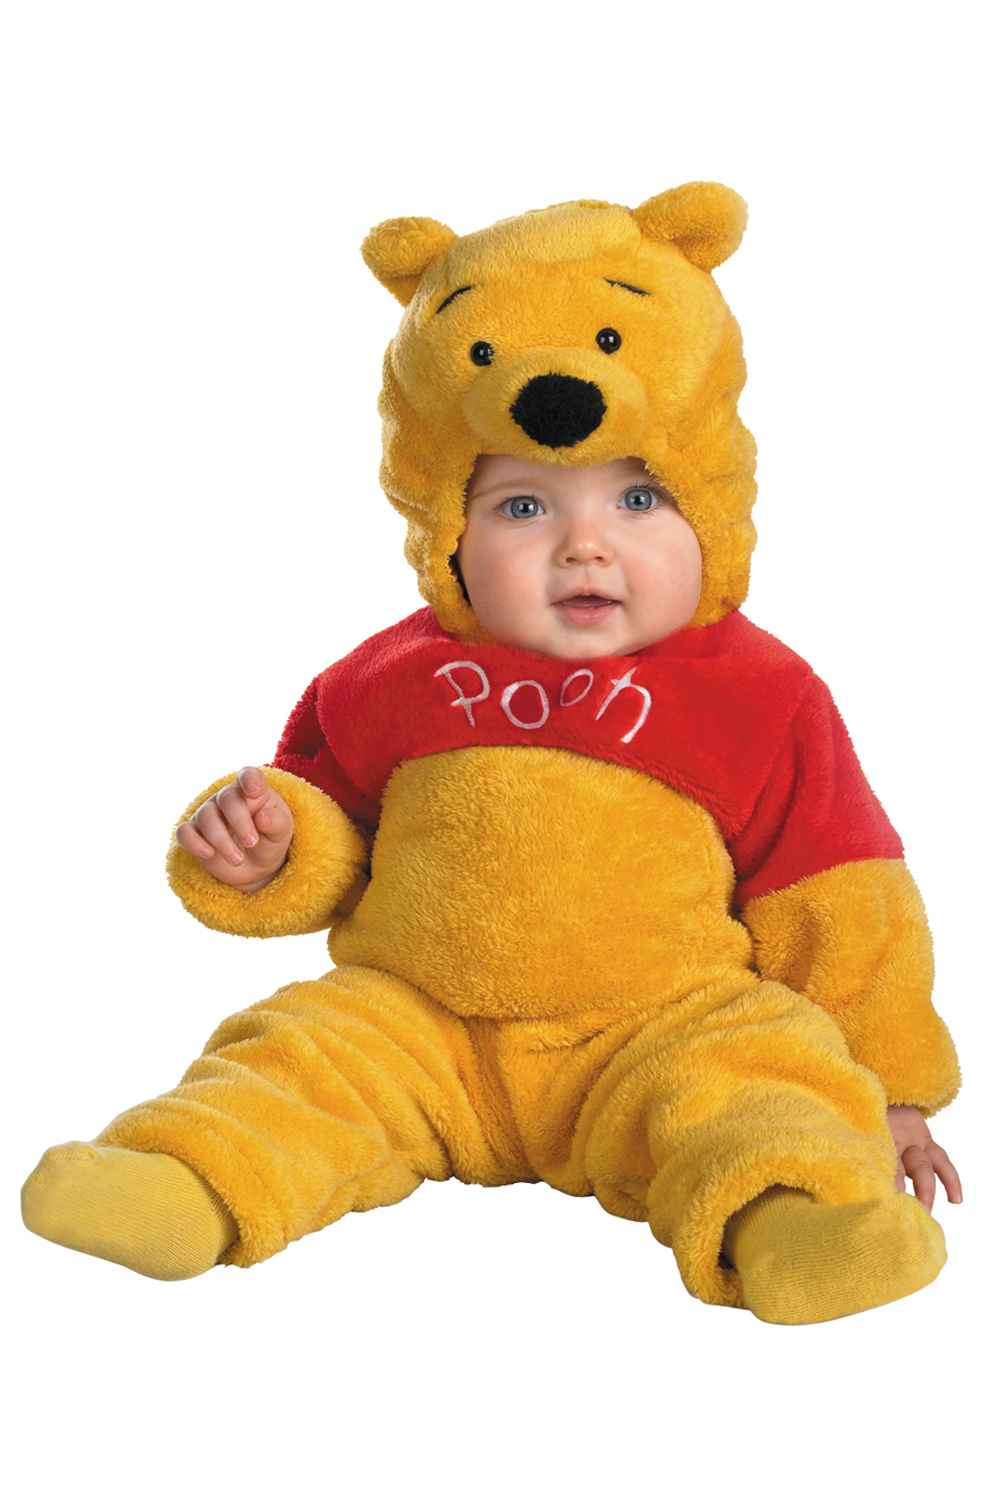 8b09ec4fd7a1 Disney Winnie The Pooh Deluxe Two-Sided Plush Jumpsuit Infant/Toddler  Costume - PureCostumes.com